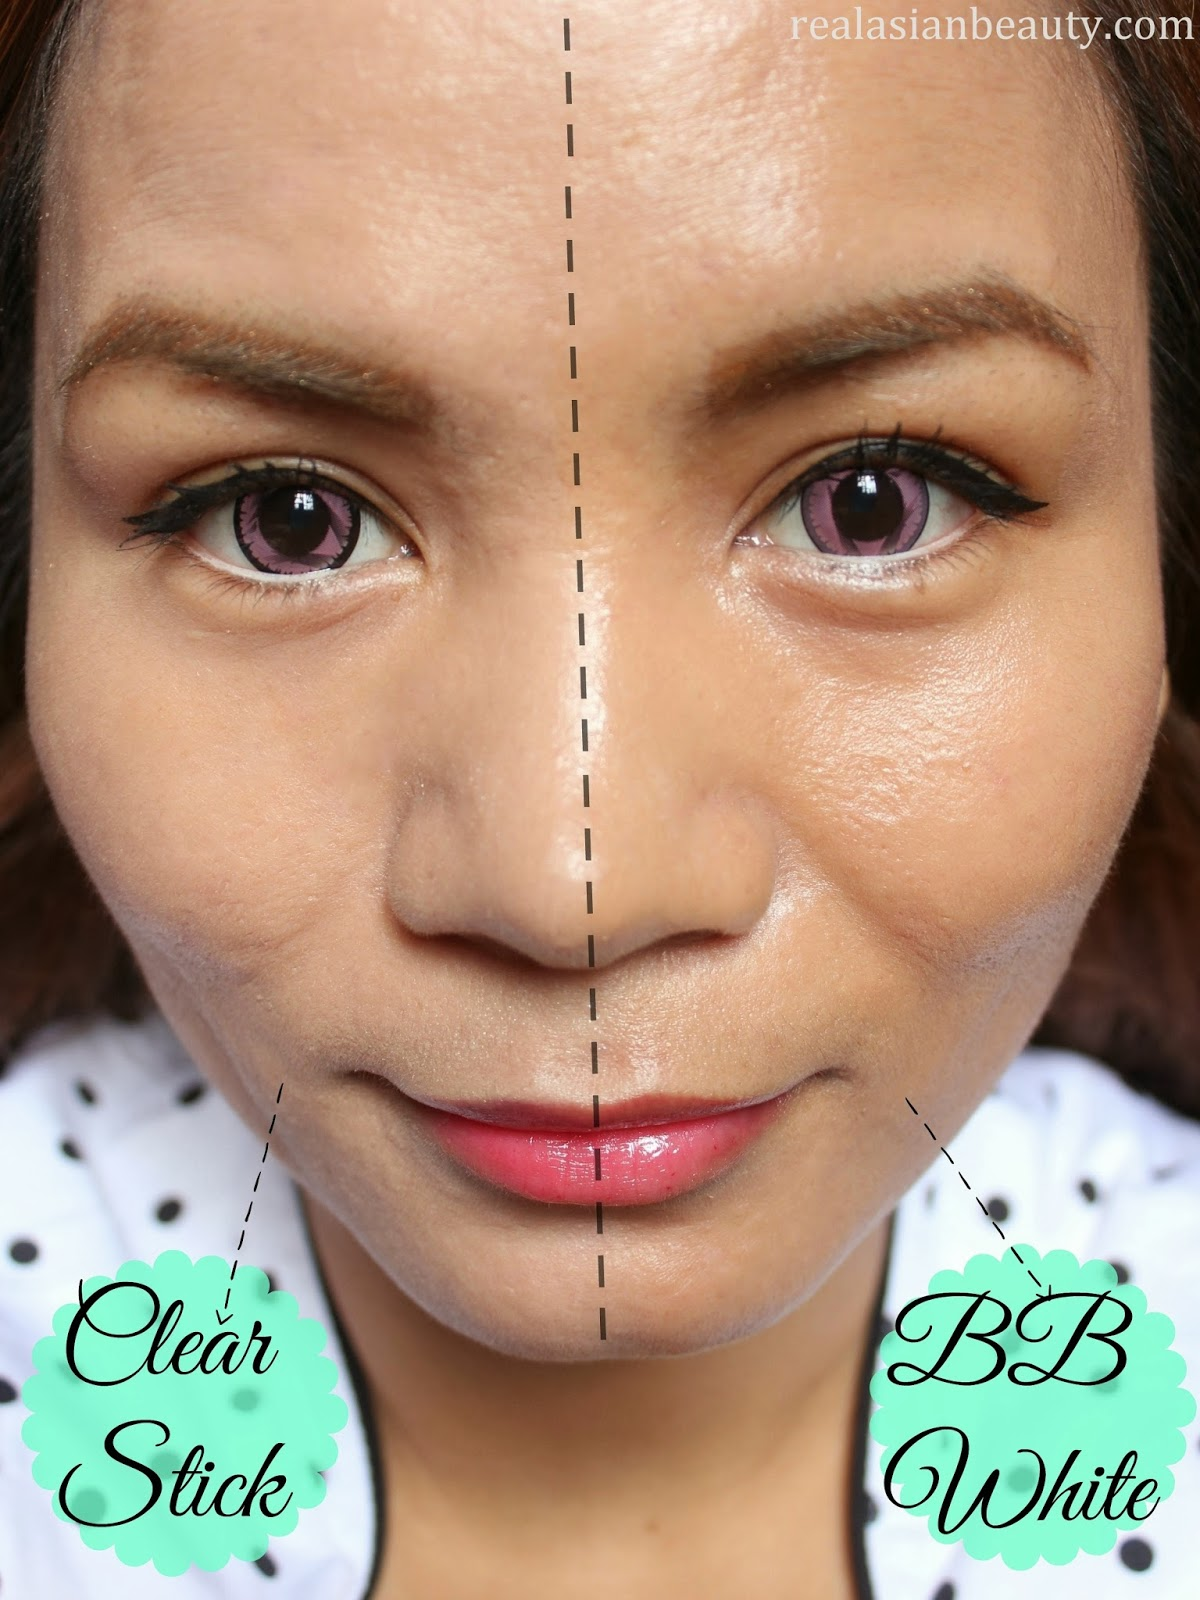 real asian beauty maybelline bb cream versus maybelline